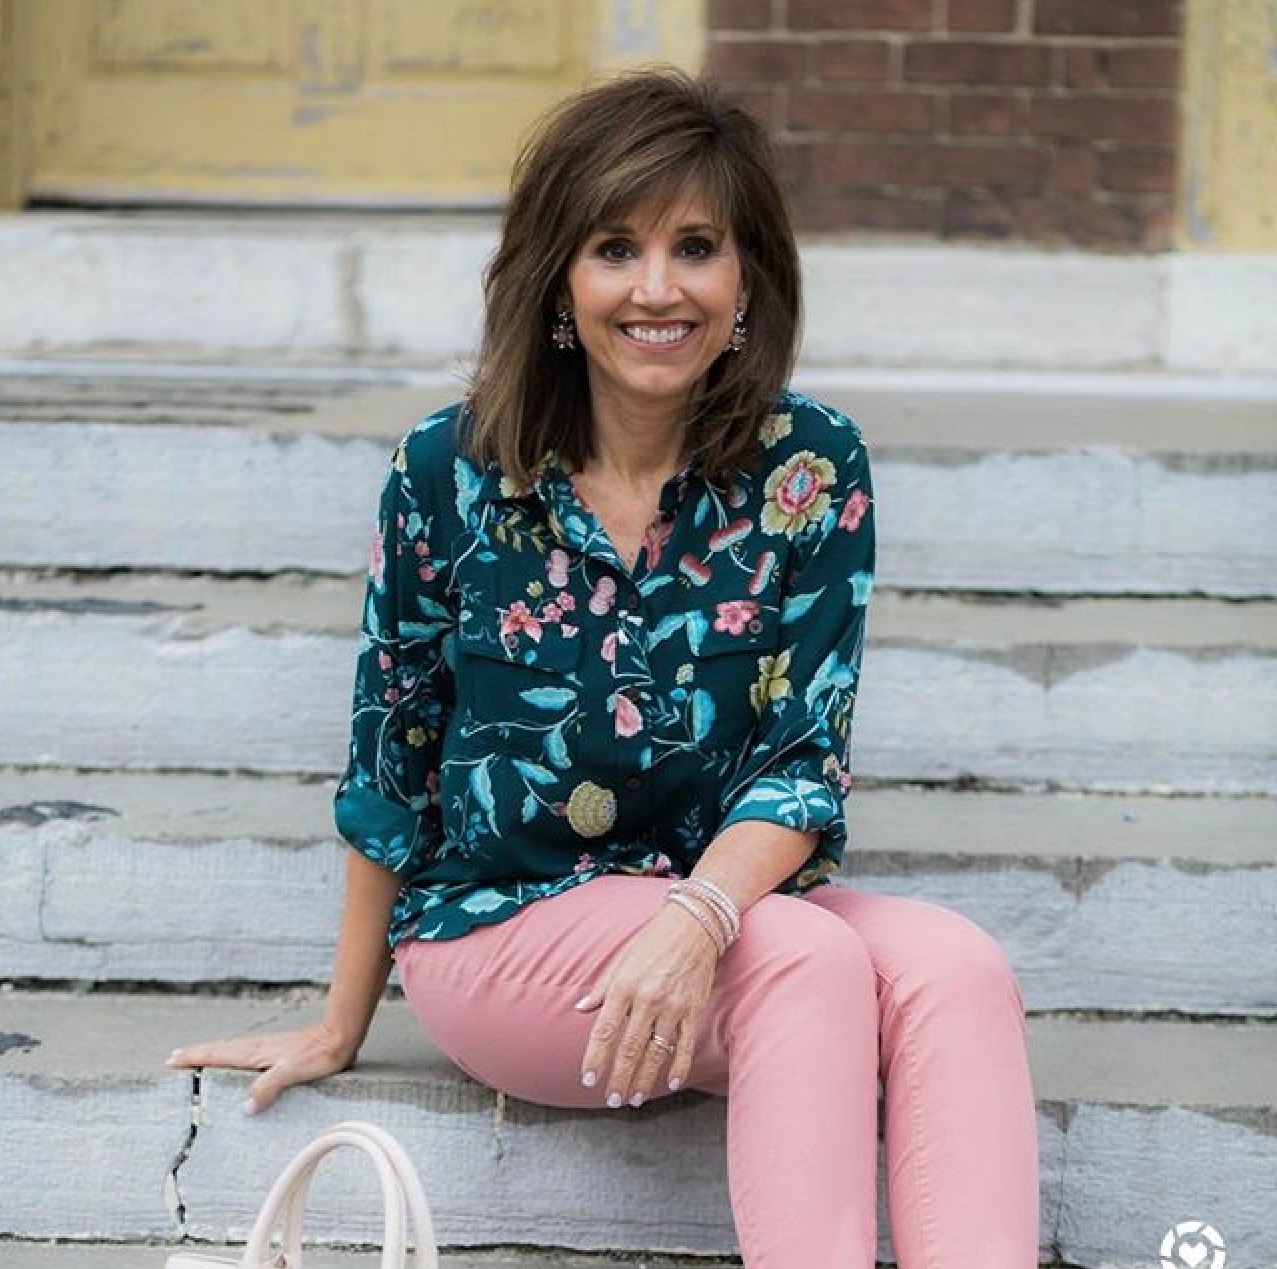 Sundays Insta-spiration from instagram is Cyndi Spivey @graceandbeauttystyle Cyndi styles the latest trends in a classy and upbeat way. She places as much emphasis on what is being worn in the heart as she does what is used for adornment